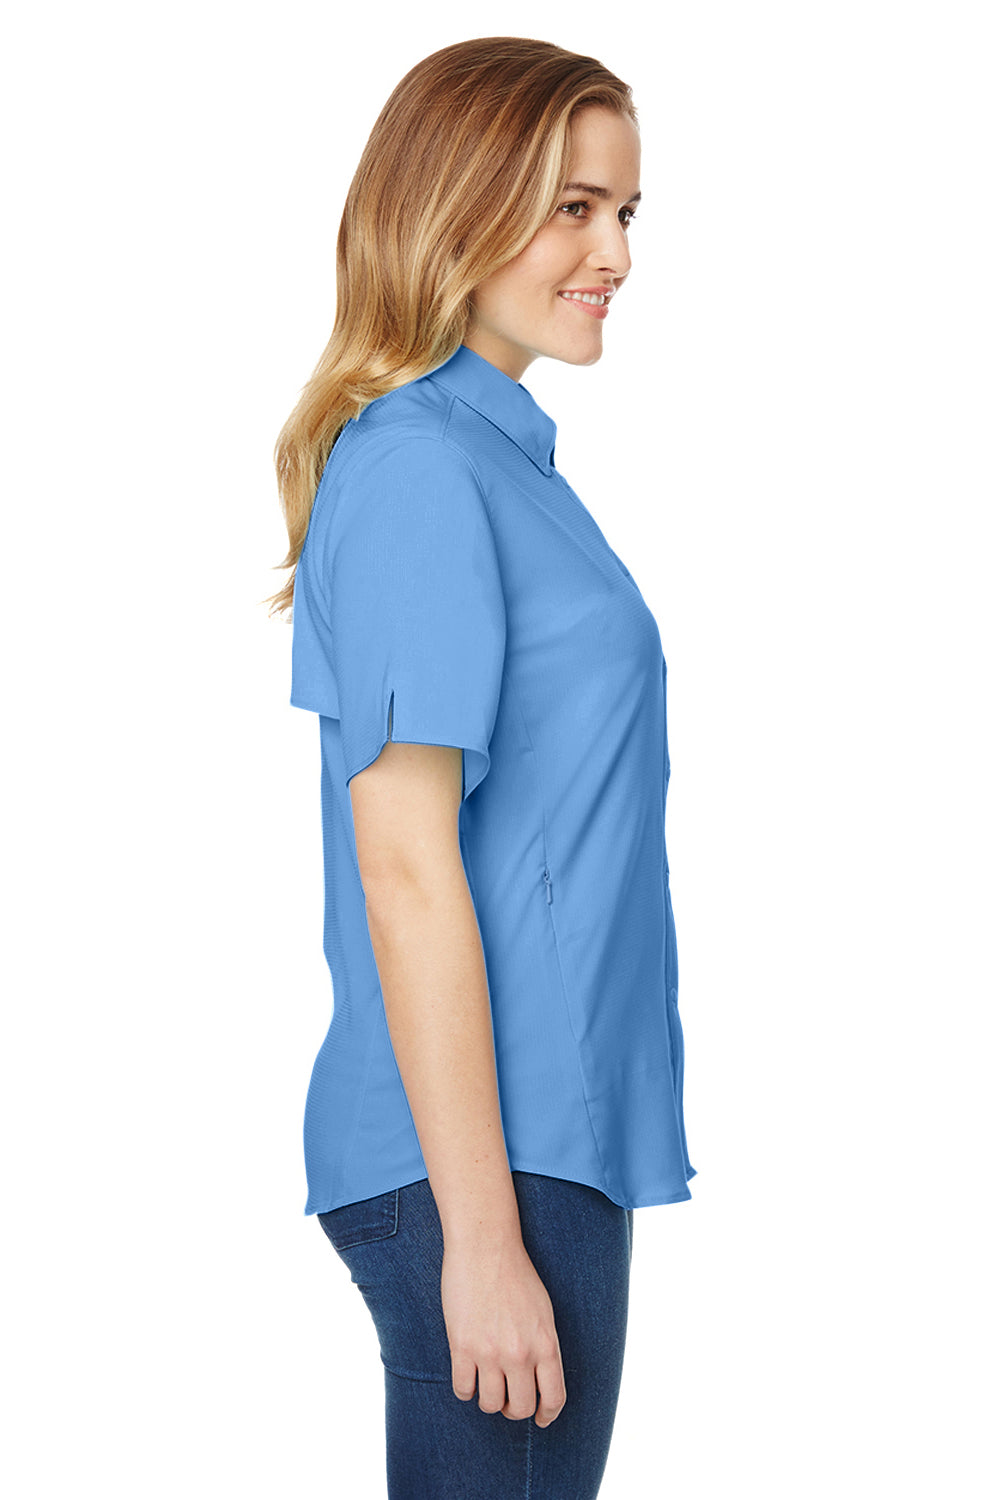 Columbia 7277 Womens Tamiami II Moisture Wicking Short Sleeve Button Down Shirt w/ Double Pockets White Cap Blue Side